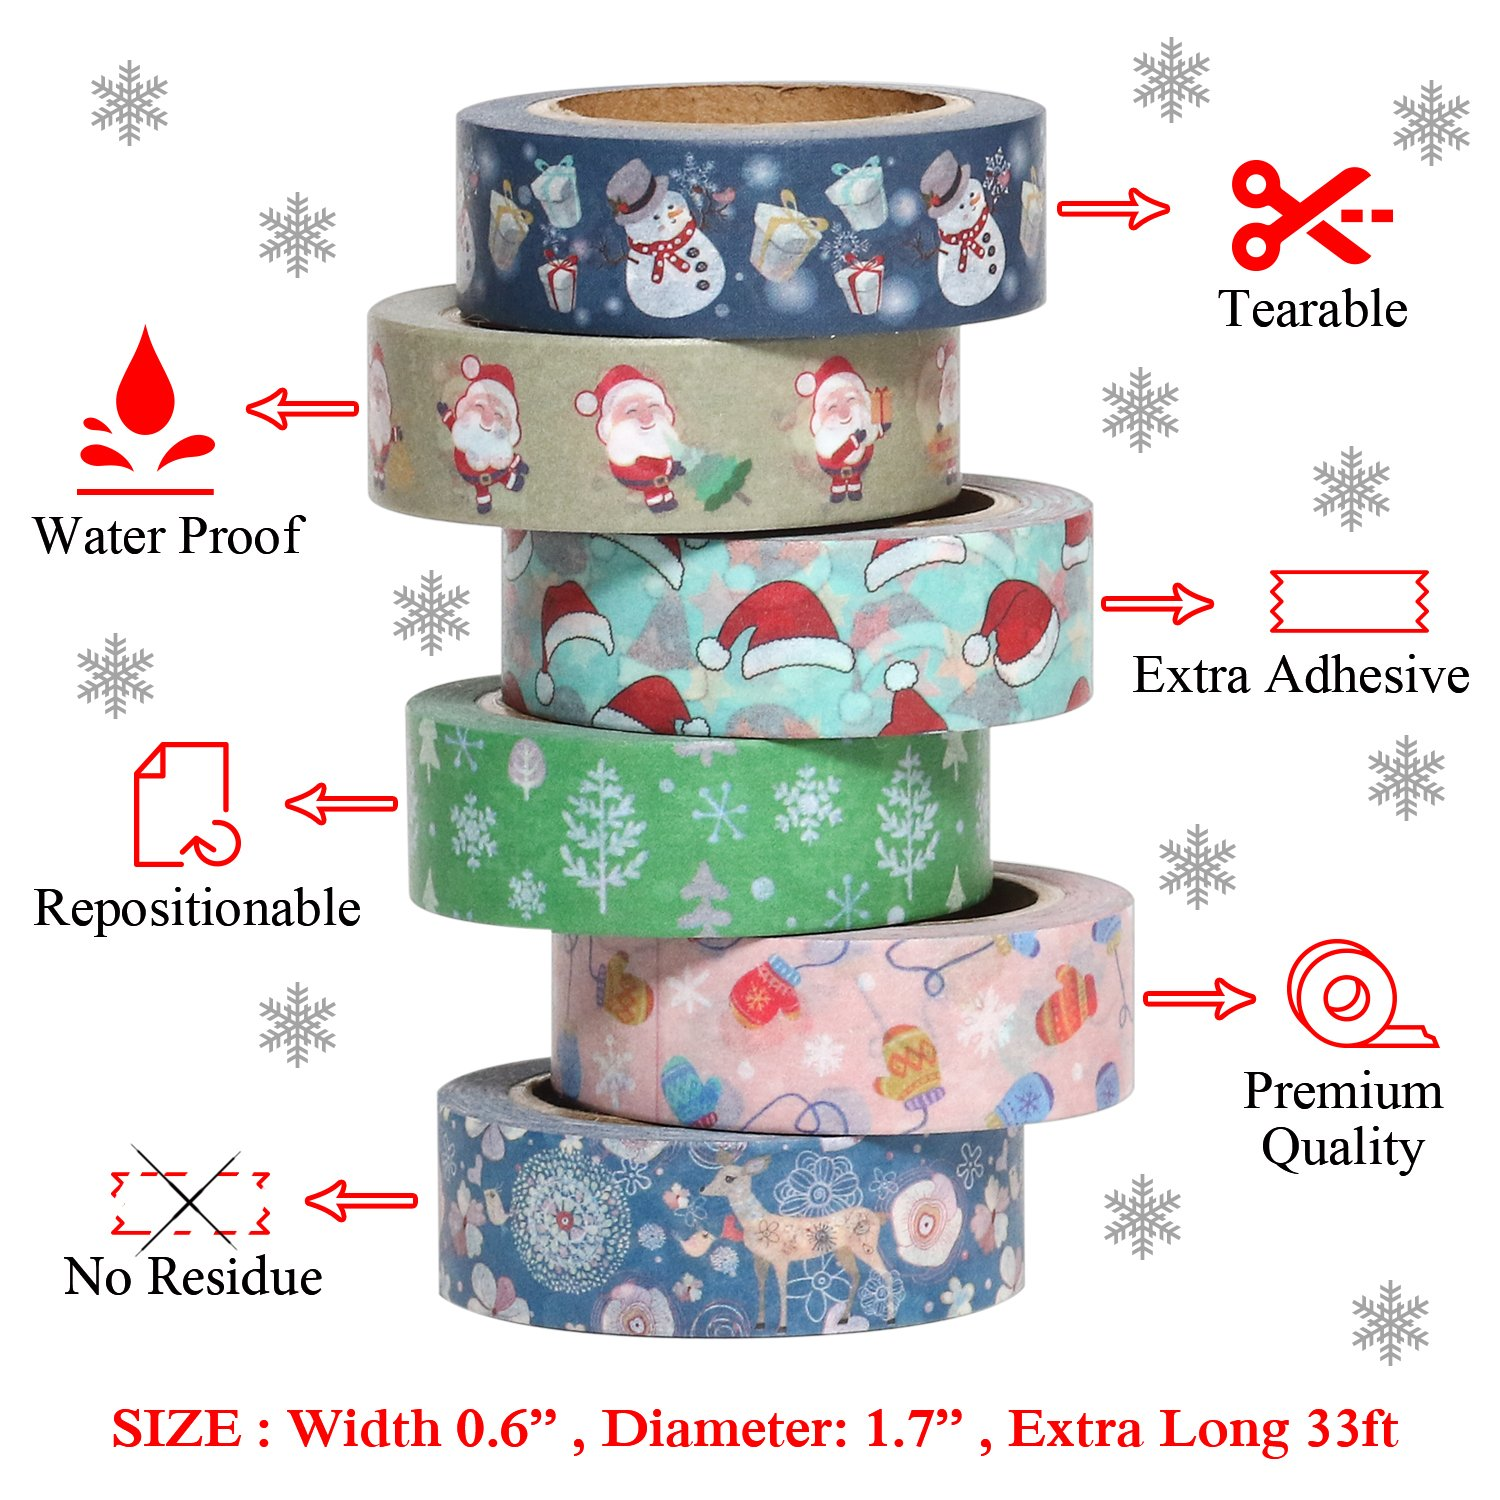 Sticky Masking Duct Tapes Gift Box Glitter Patterned Solid 16 Decorative Rolls DIY Crafts Planners Scrapbooking ARTIT Premium Washi Tape Set 4 Sticker Sheets 33 feet Long 0.6 inch Wide